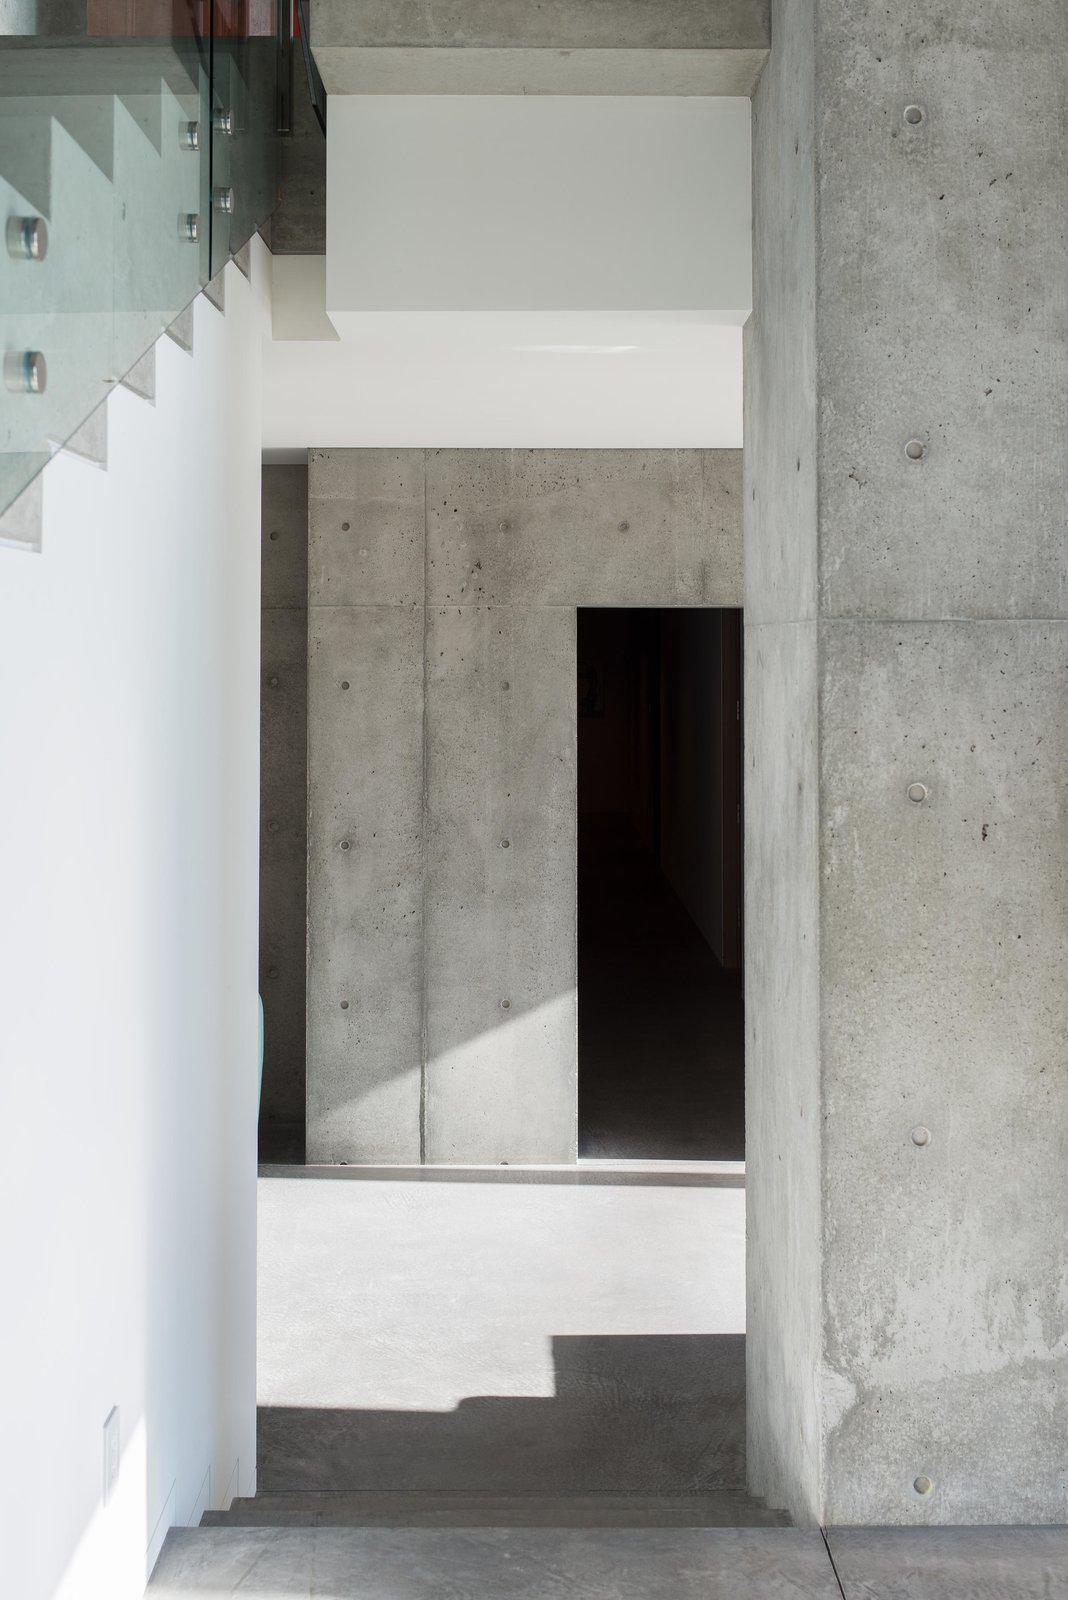 Staircase, Metal, and Concrete Cliff Dwelling   Olson Kundig  Best Staircase Metal Concrete Photos from Cliff Dwelling